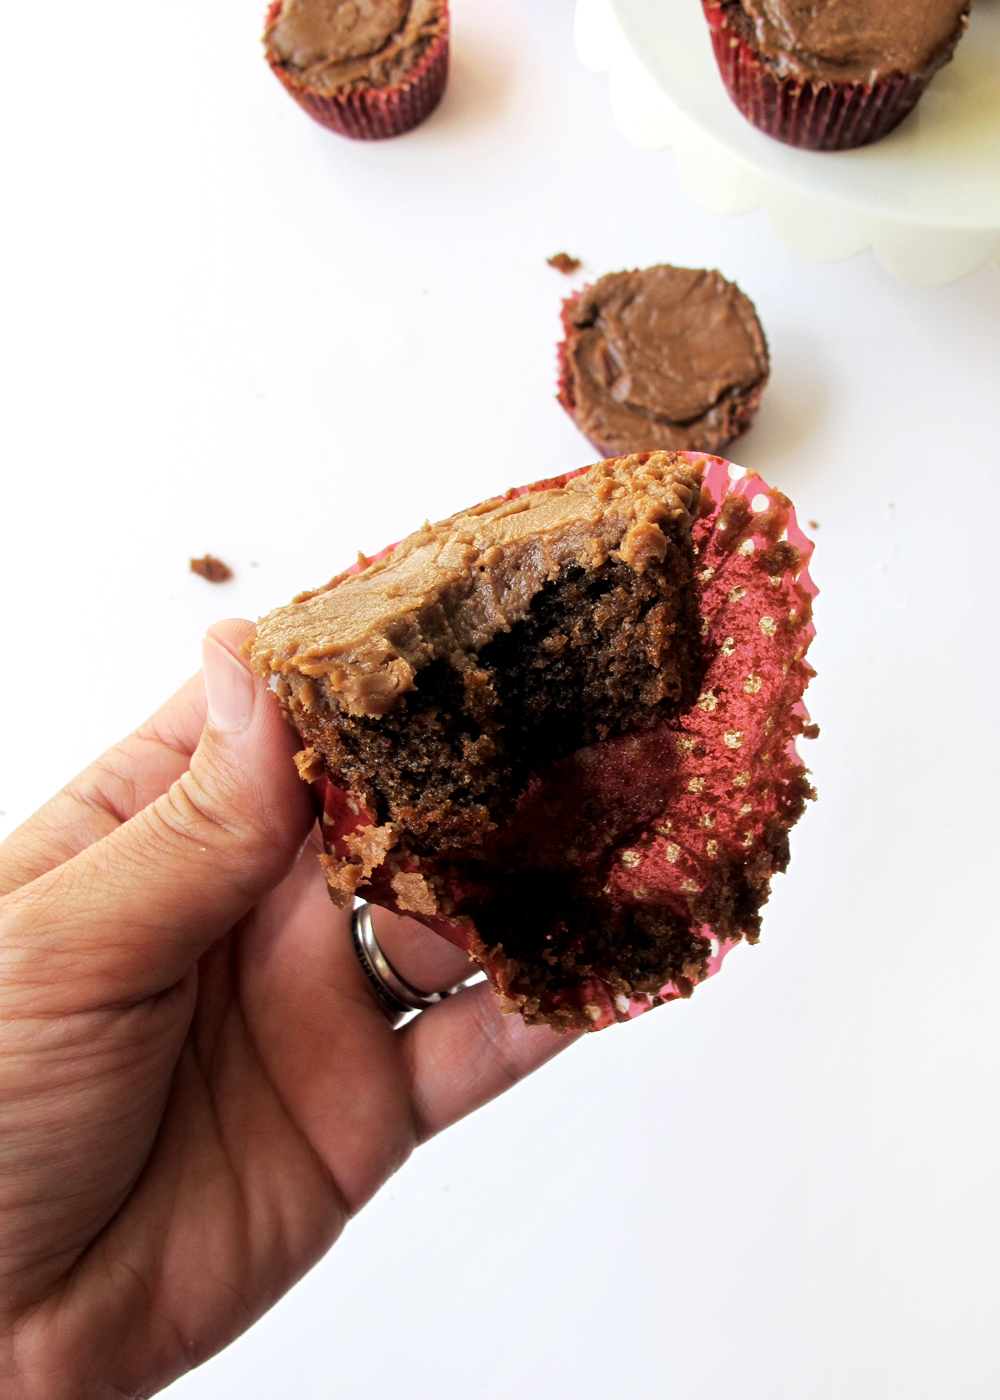 yummy Coca-Cola cupcake recipe